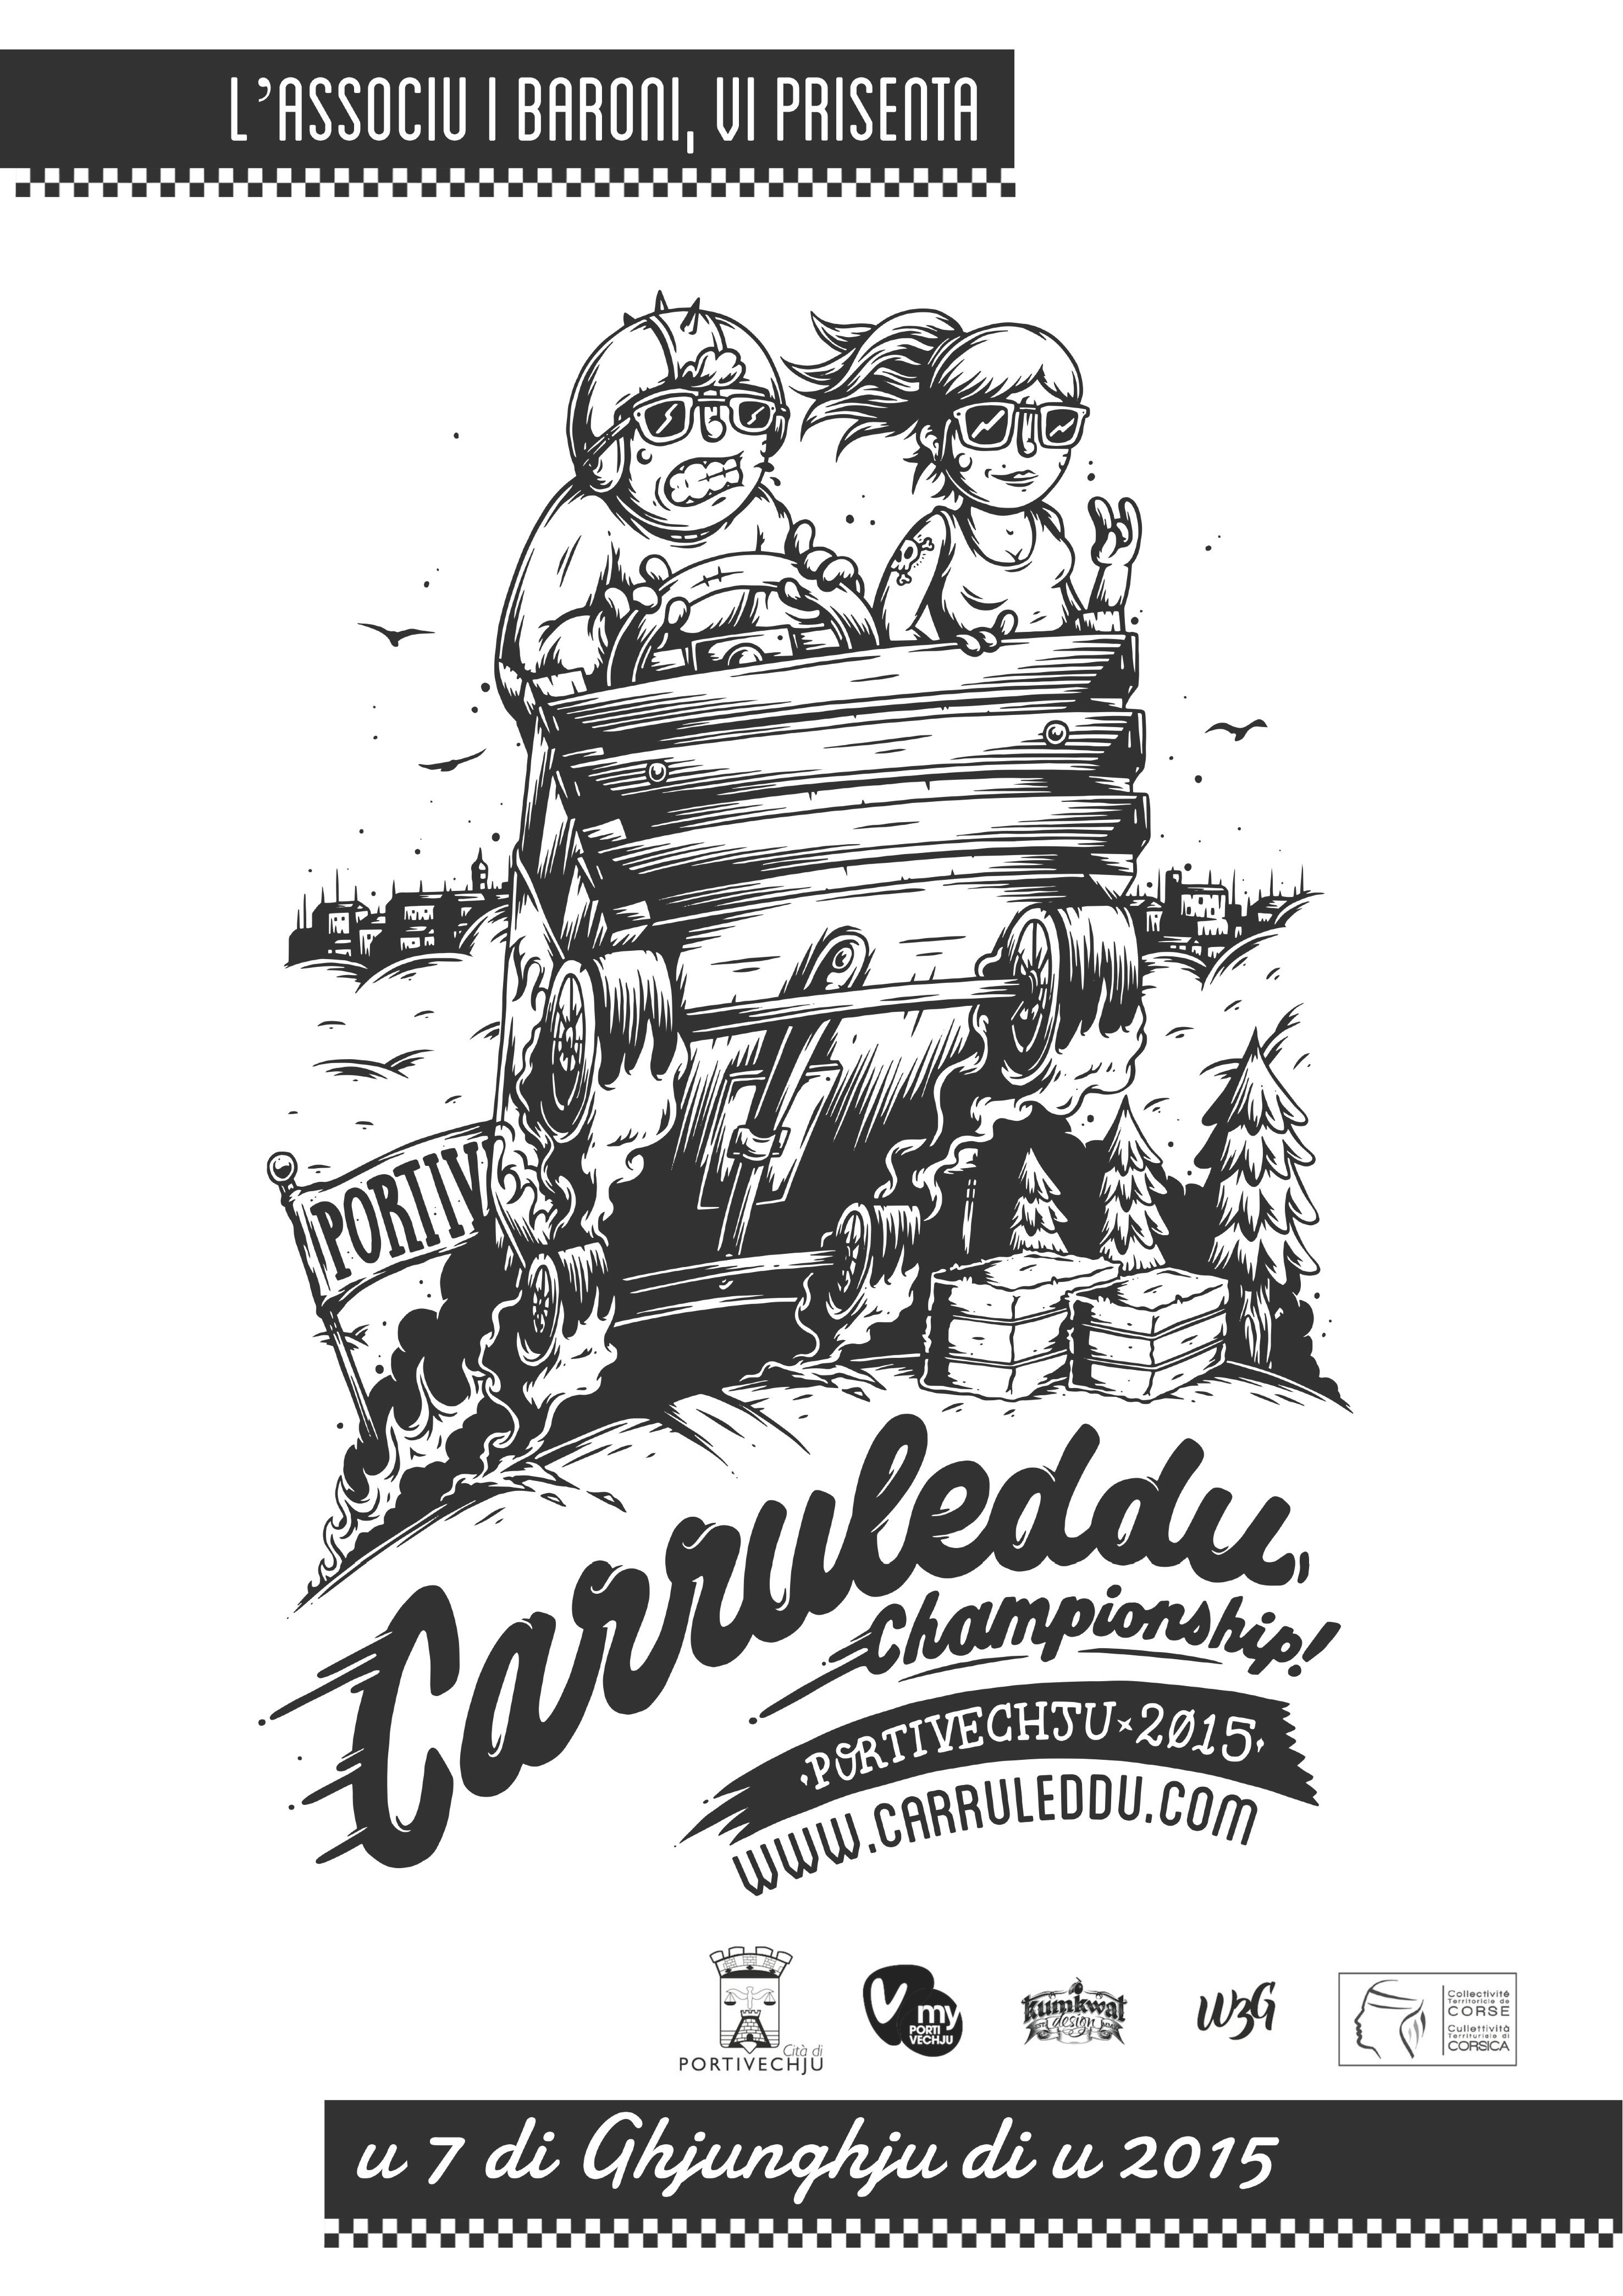 Portivechju : The first Carruleddu Championship